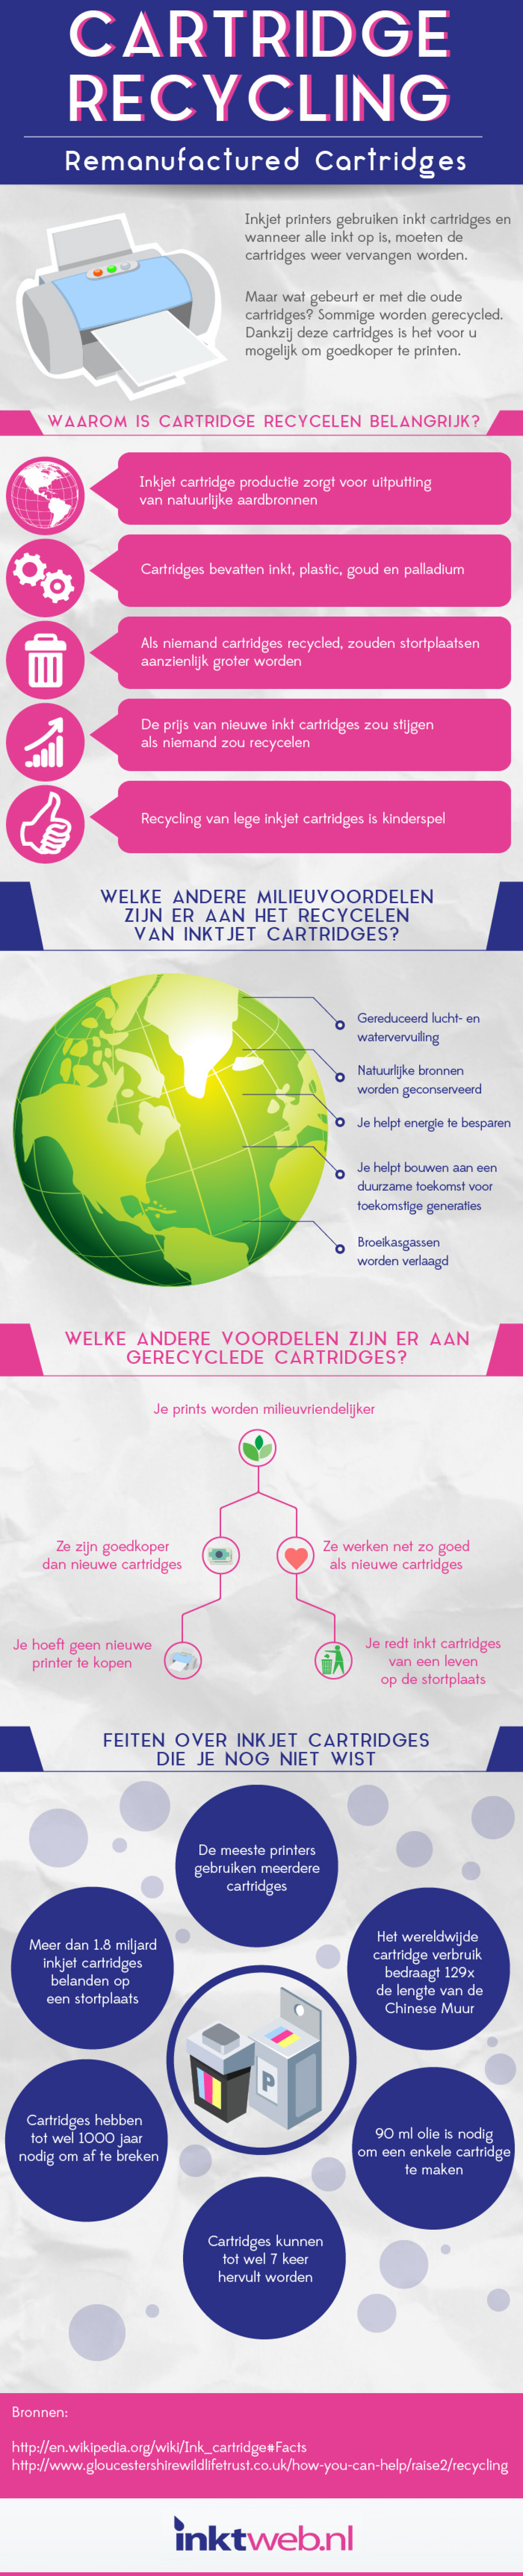 Cartridge Recycling: Remanufactured Cartridges Infographic